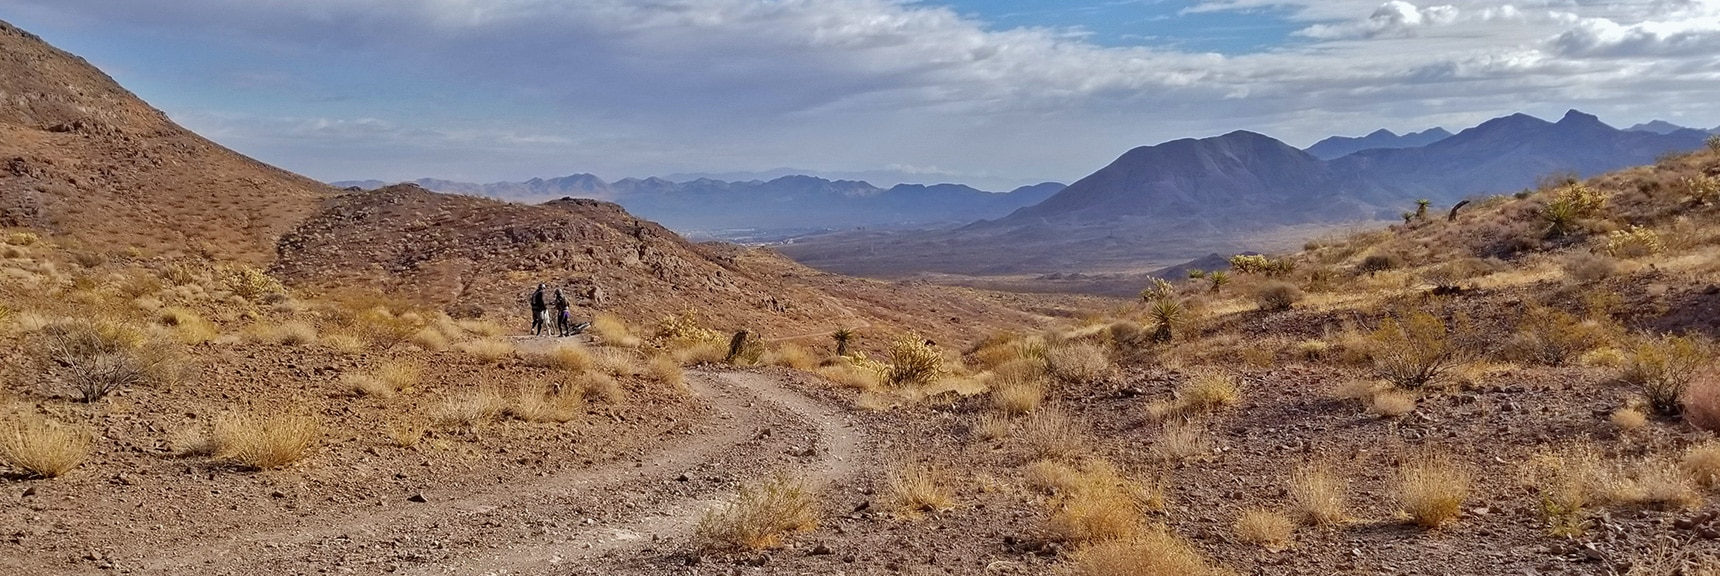 Looking Back Toward Henderson, the Lake Mead Area and Beyond   McCullough Hills Trail in Sloan Canyon National Conservation Area, Nevada